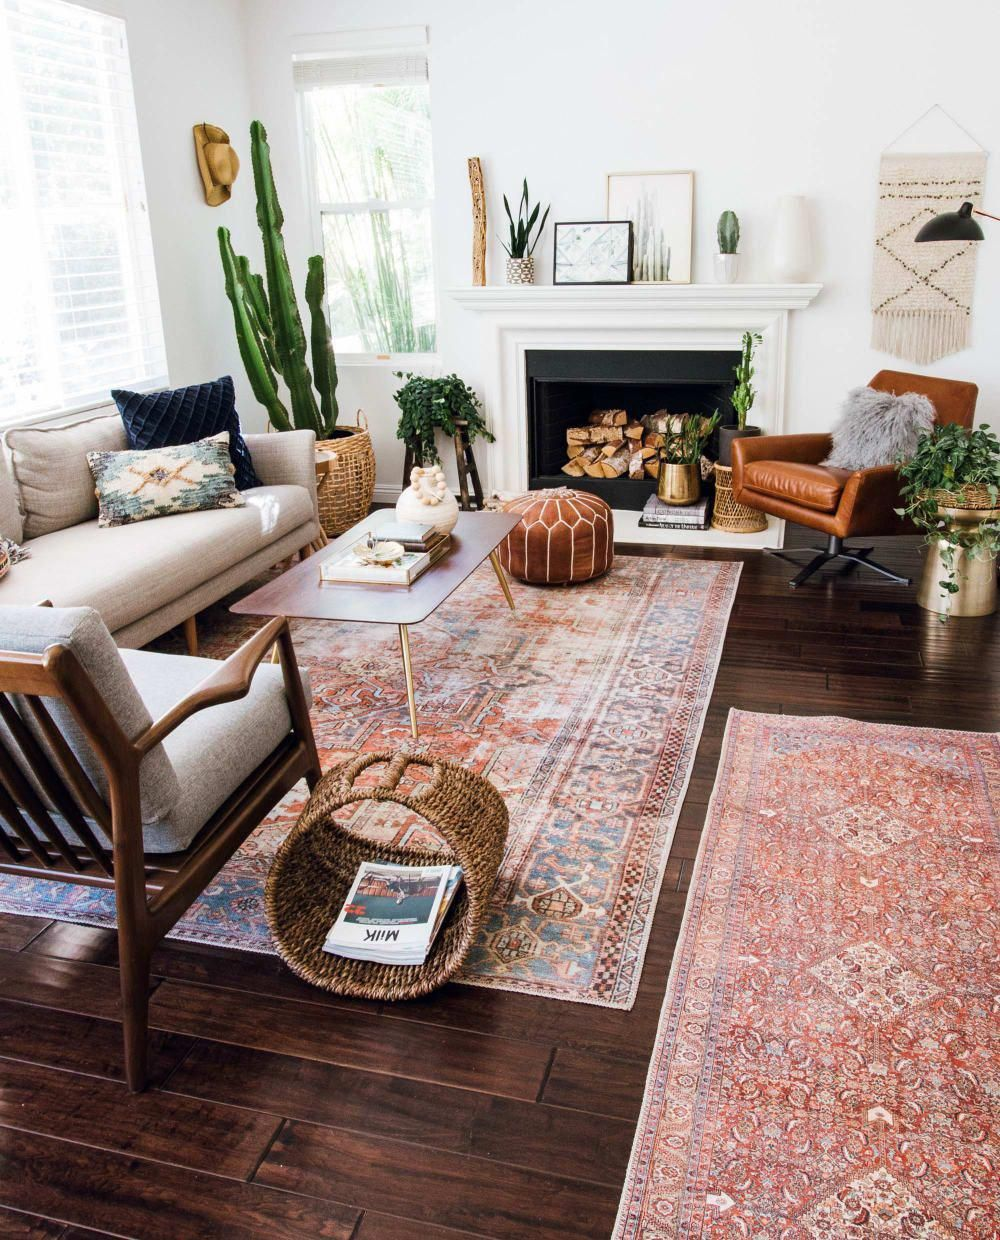 Layered And Cozy Eclectic Living Space Boho Vintage And Mid Century Modern Accents Livingroom Midce Eclectic Living Room Home Decor Inspiration Home Decor #vintage #eclectic #living #room